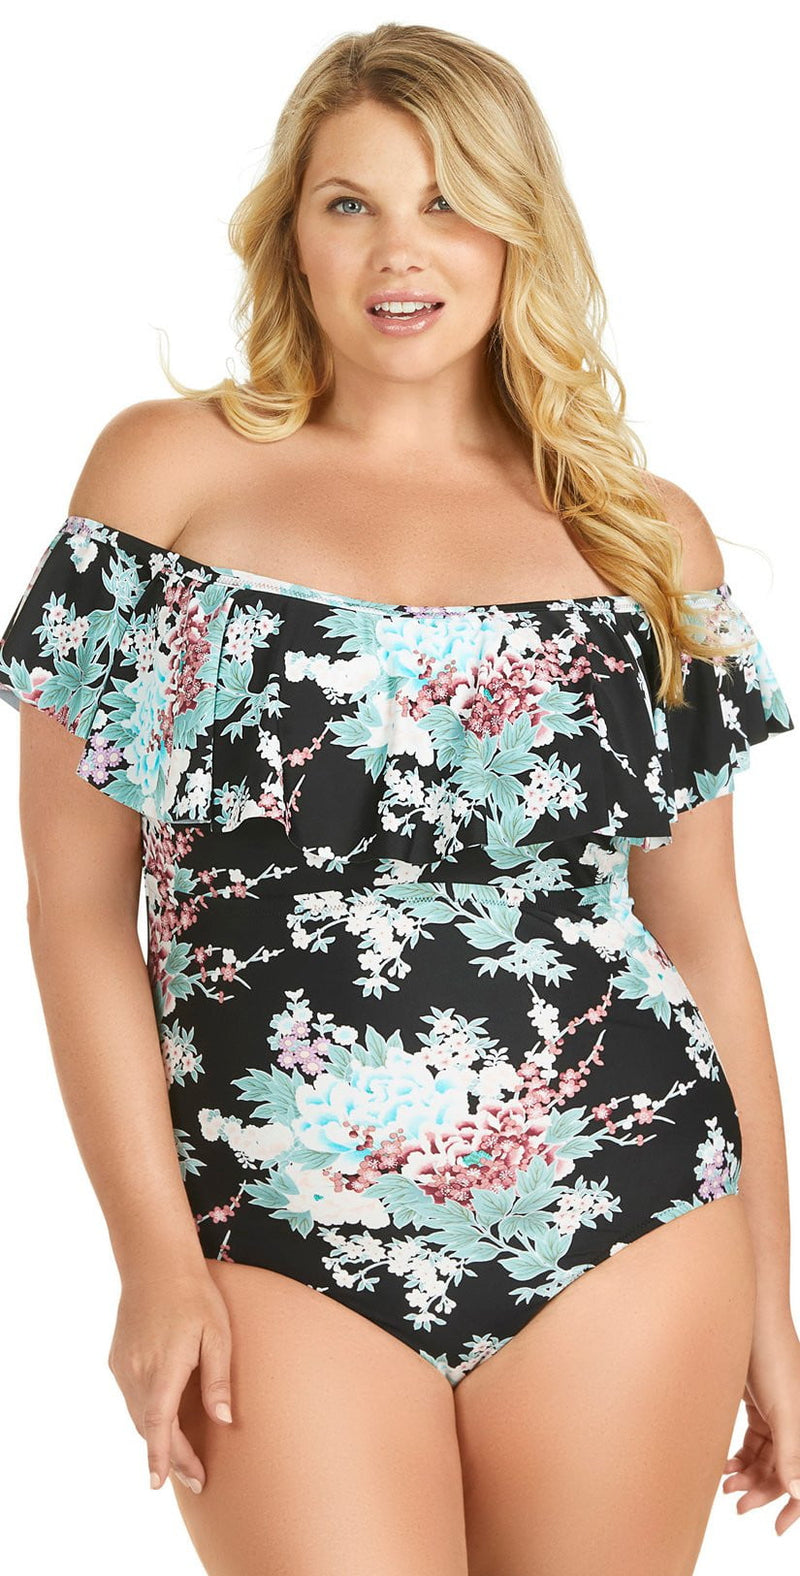 Raisins Curve Tortuga Off the Shoulder One Piece Swimsuit Y840581: